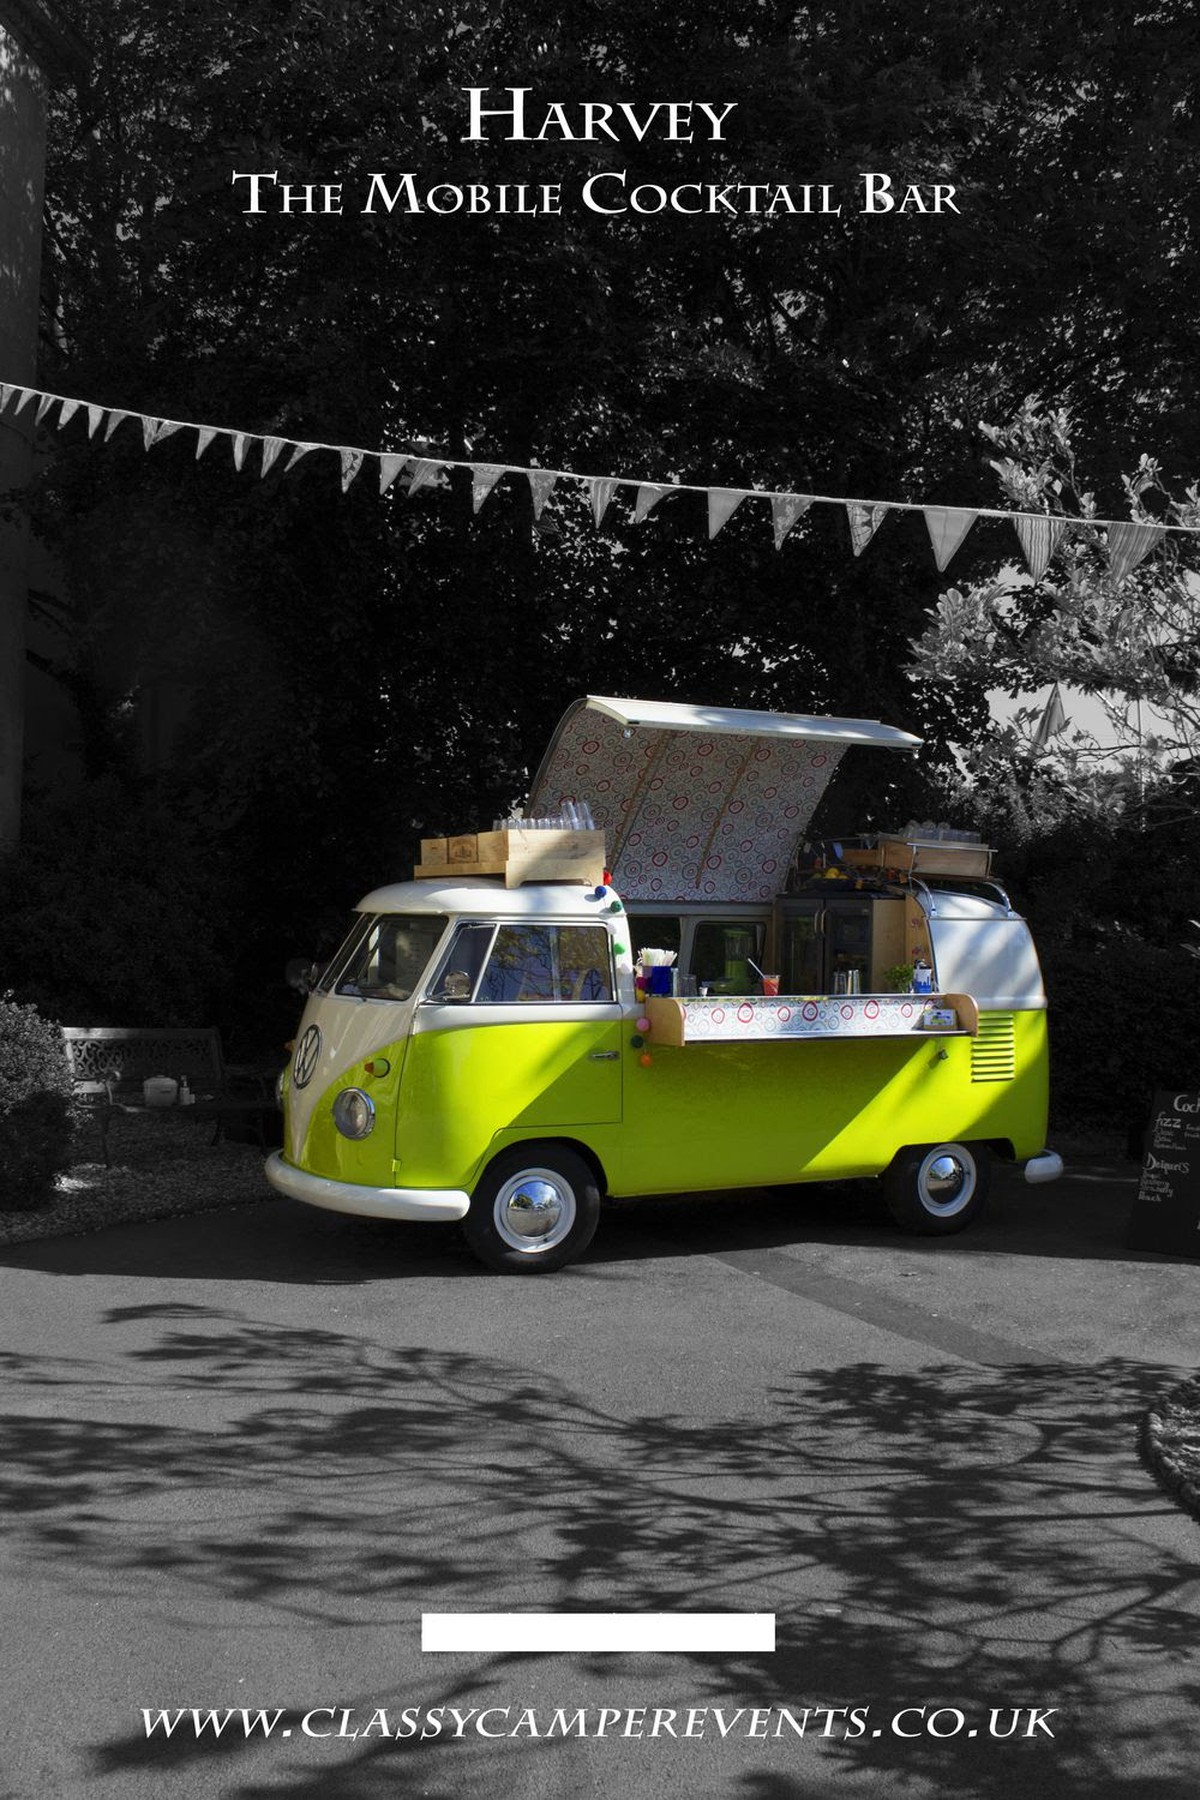 Secondhand Catering Equipment Catering Businesses For Sale Unique Vw Mobile Cocktail Bar